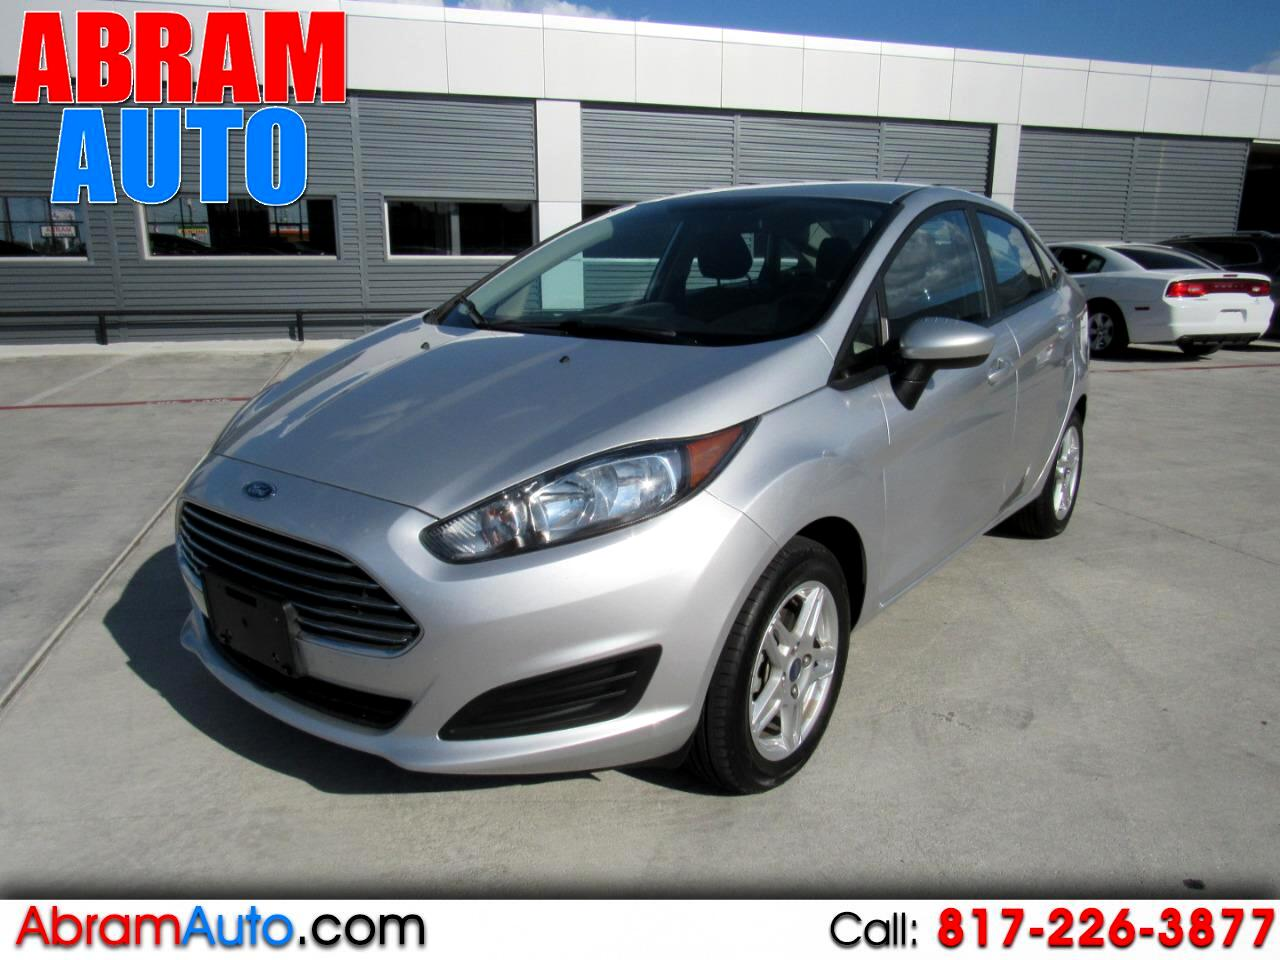 used 2017 ford fiesta se sedan in arlington tx auto com 3fadp4bj6hm138148 auto com